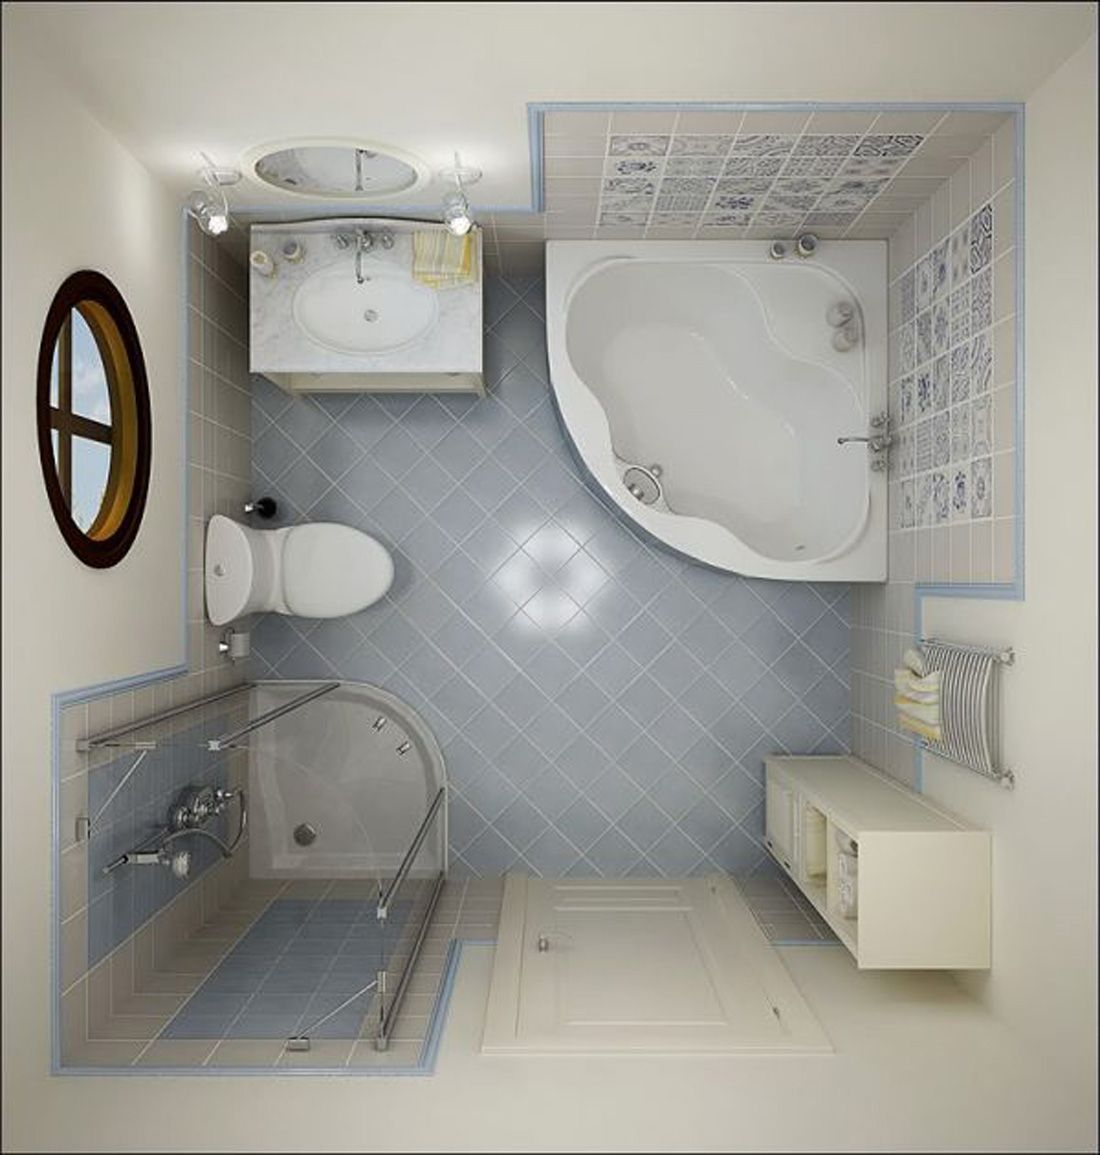 Small space bathroom remodel ideas - Small Bathroom Design